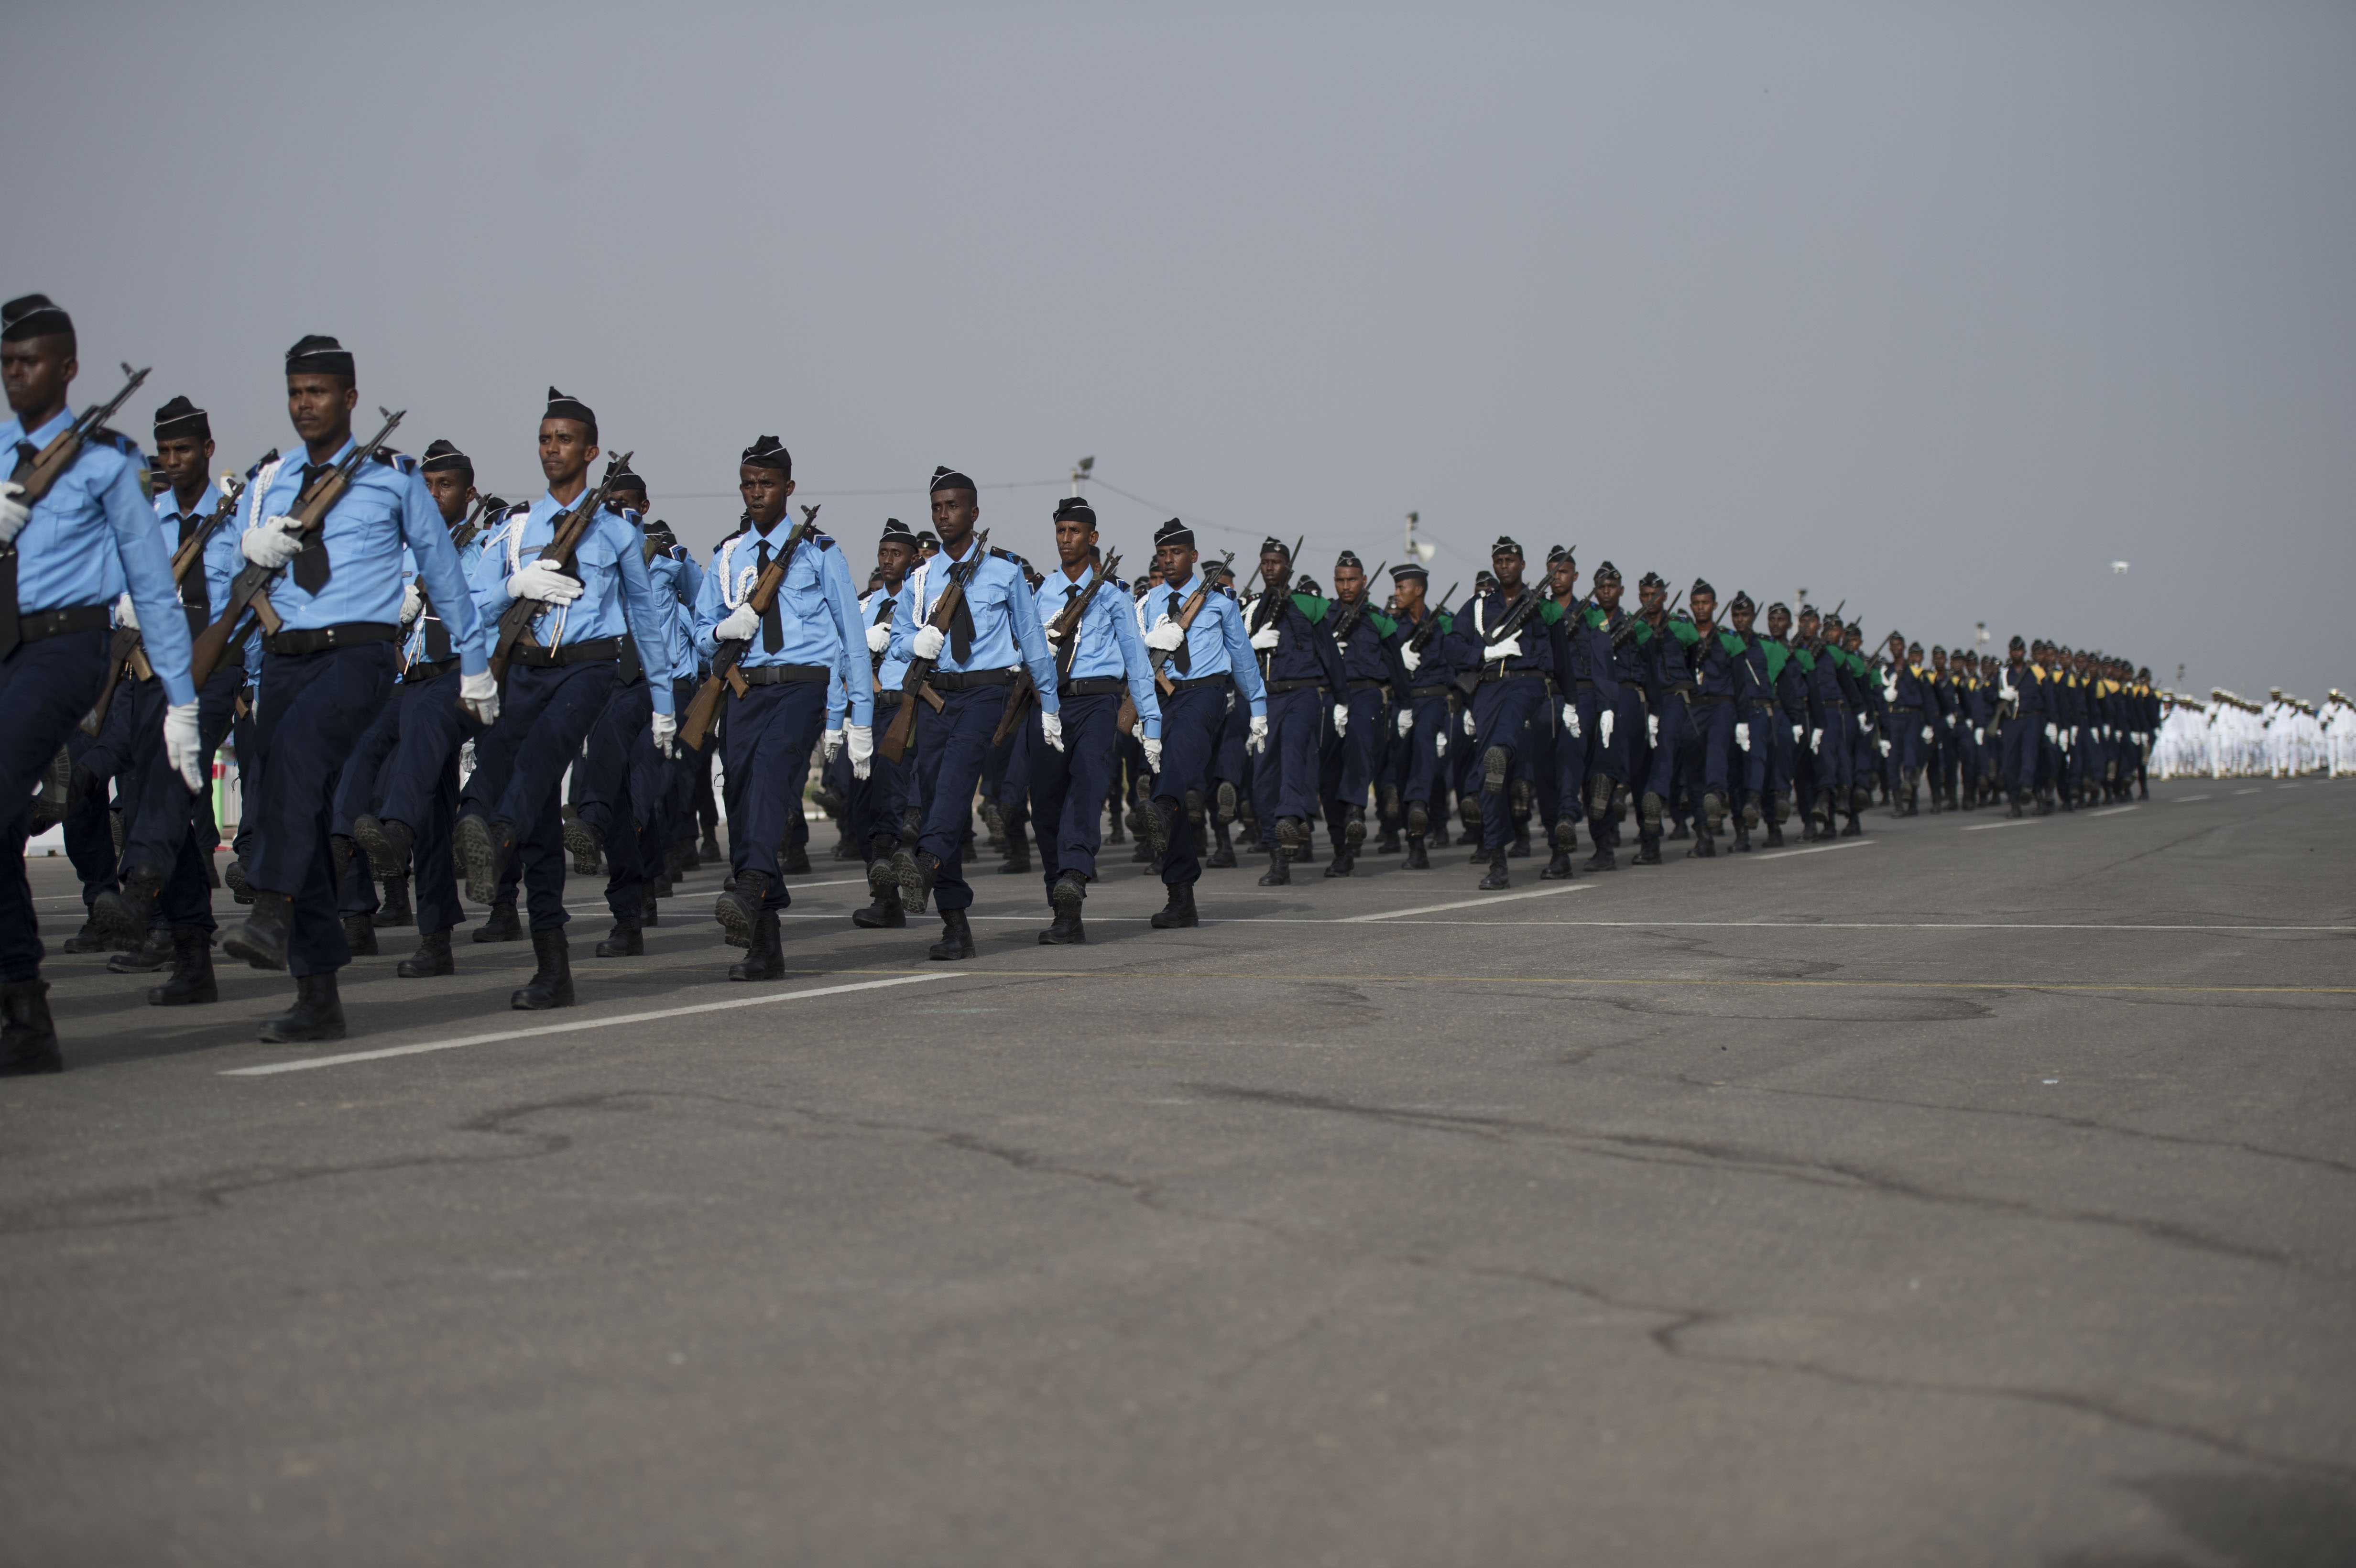 Members from multiple branches of the Djibouti Armed Forces march in unison during the Djibouti Independence Day parade June 27, 2016, at Djibouti. Service members from all Djiboutian military branches participated in the parade. (U.S. Air Force photo by Staff Sgt. Eric Summers Jr.)